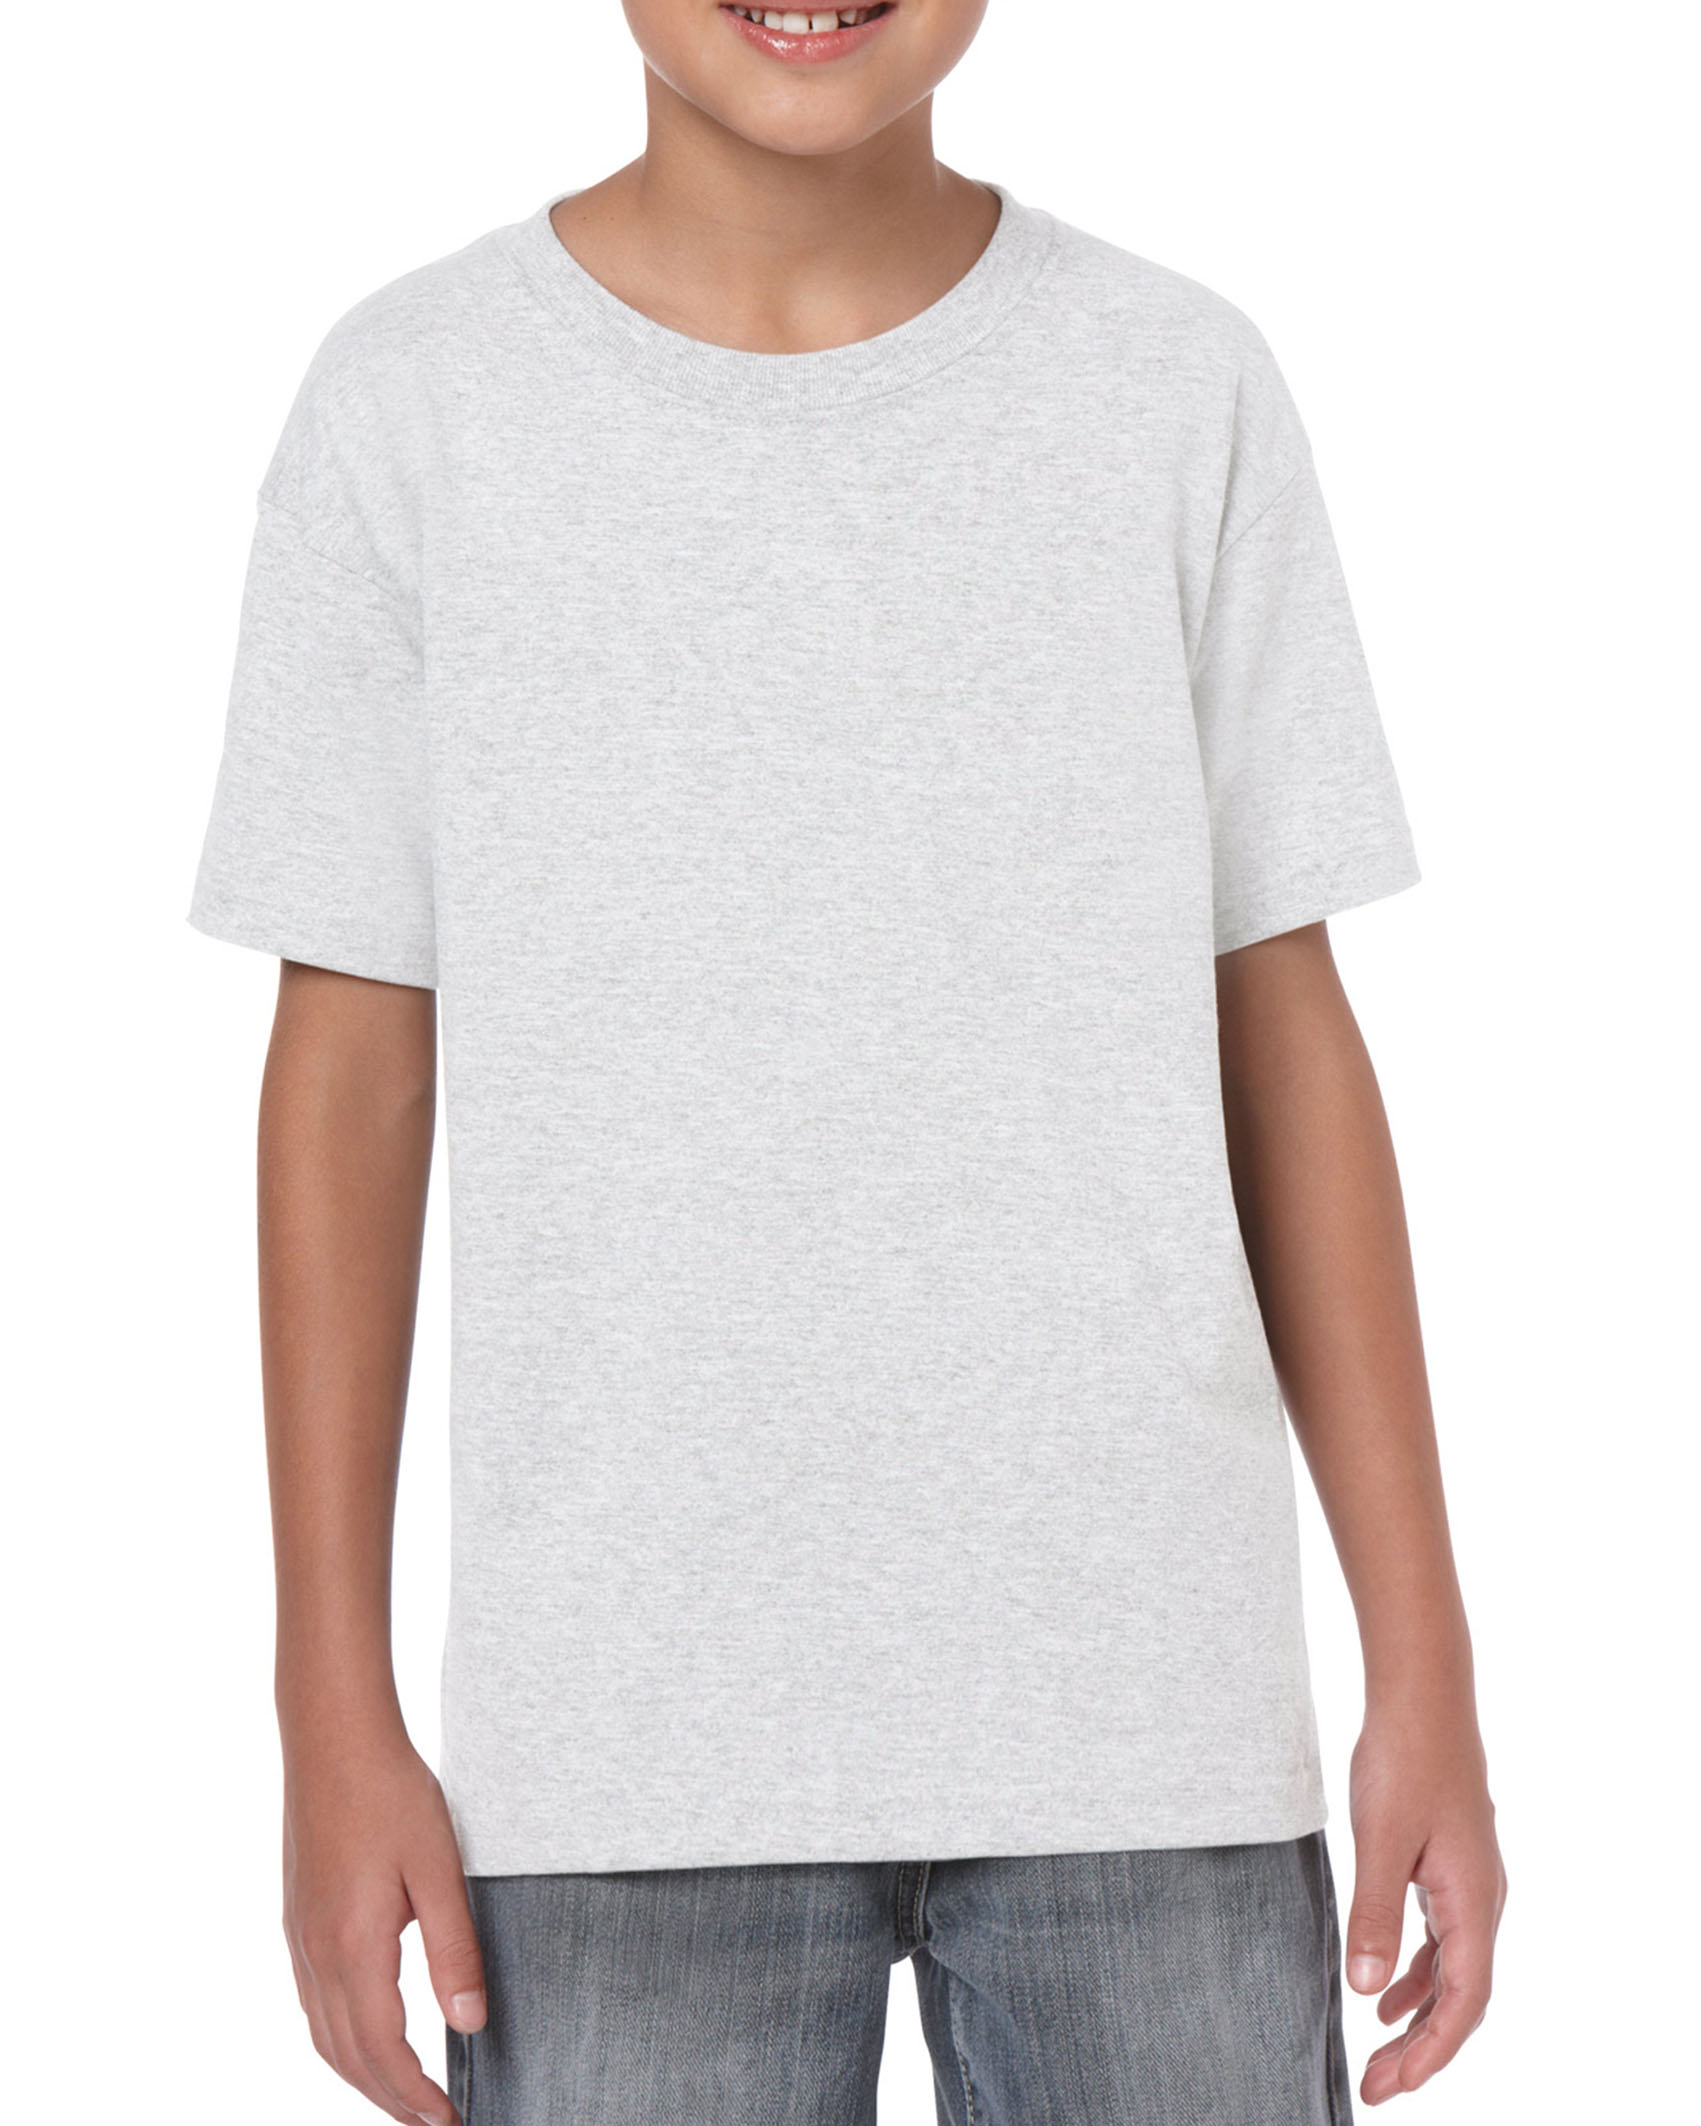 Gildan T-shirt Heavy Cotton for kids